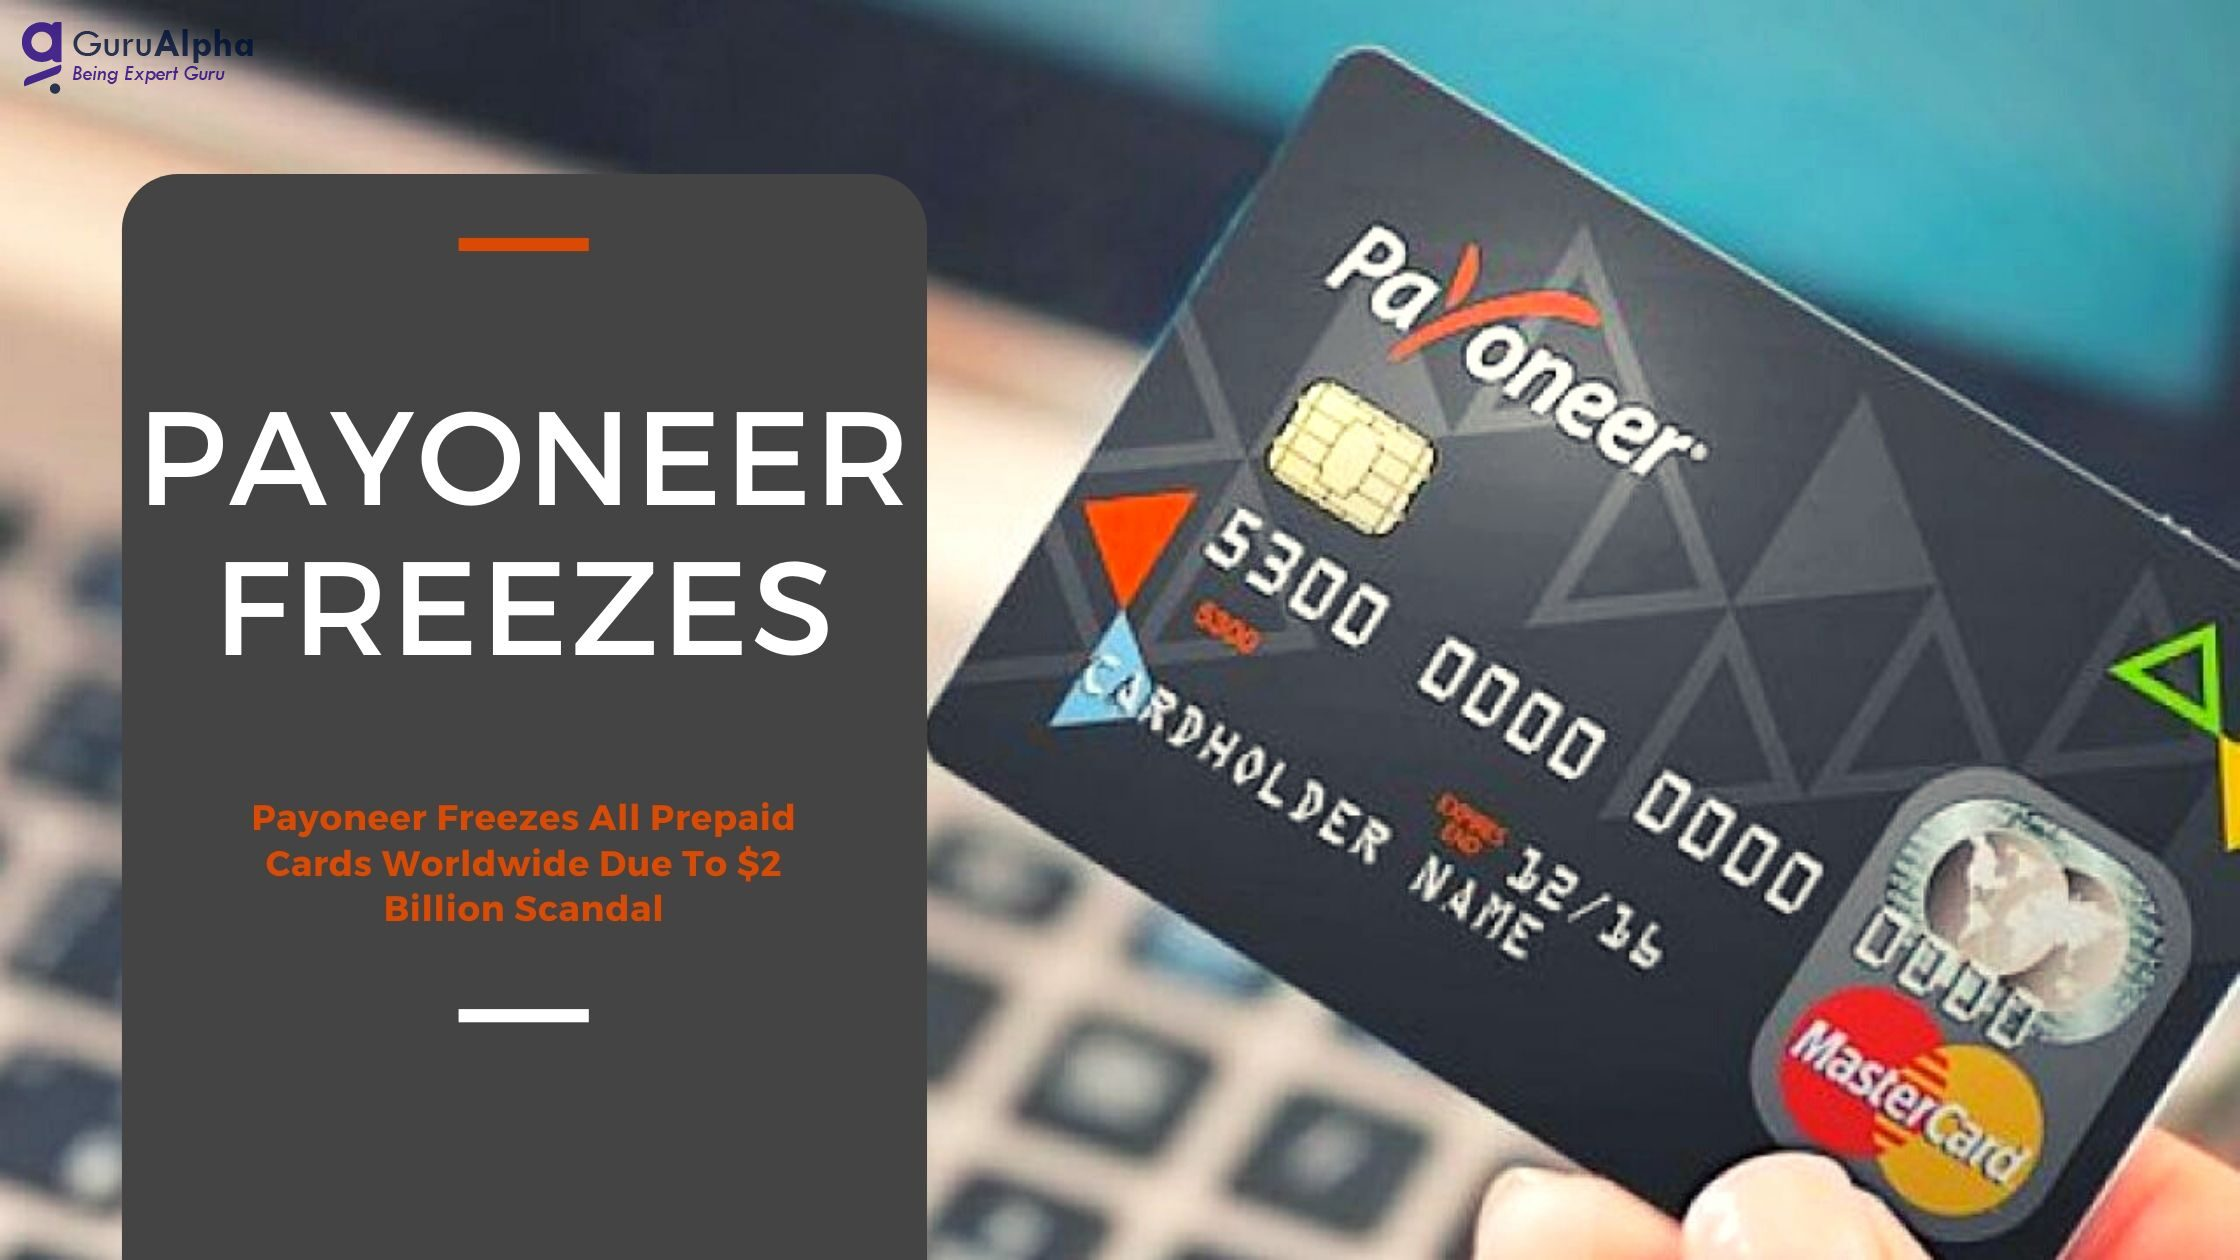 Payoneer Freezes All Prepaid Cards Worldwide Due To $2 Billion Scandal